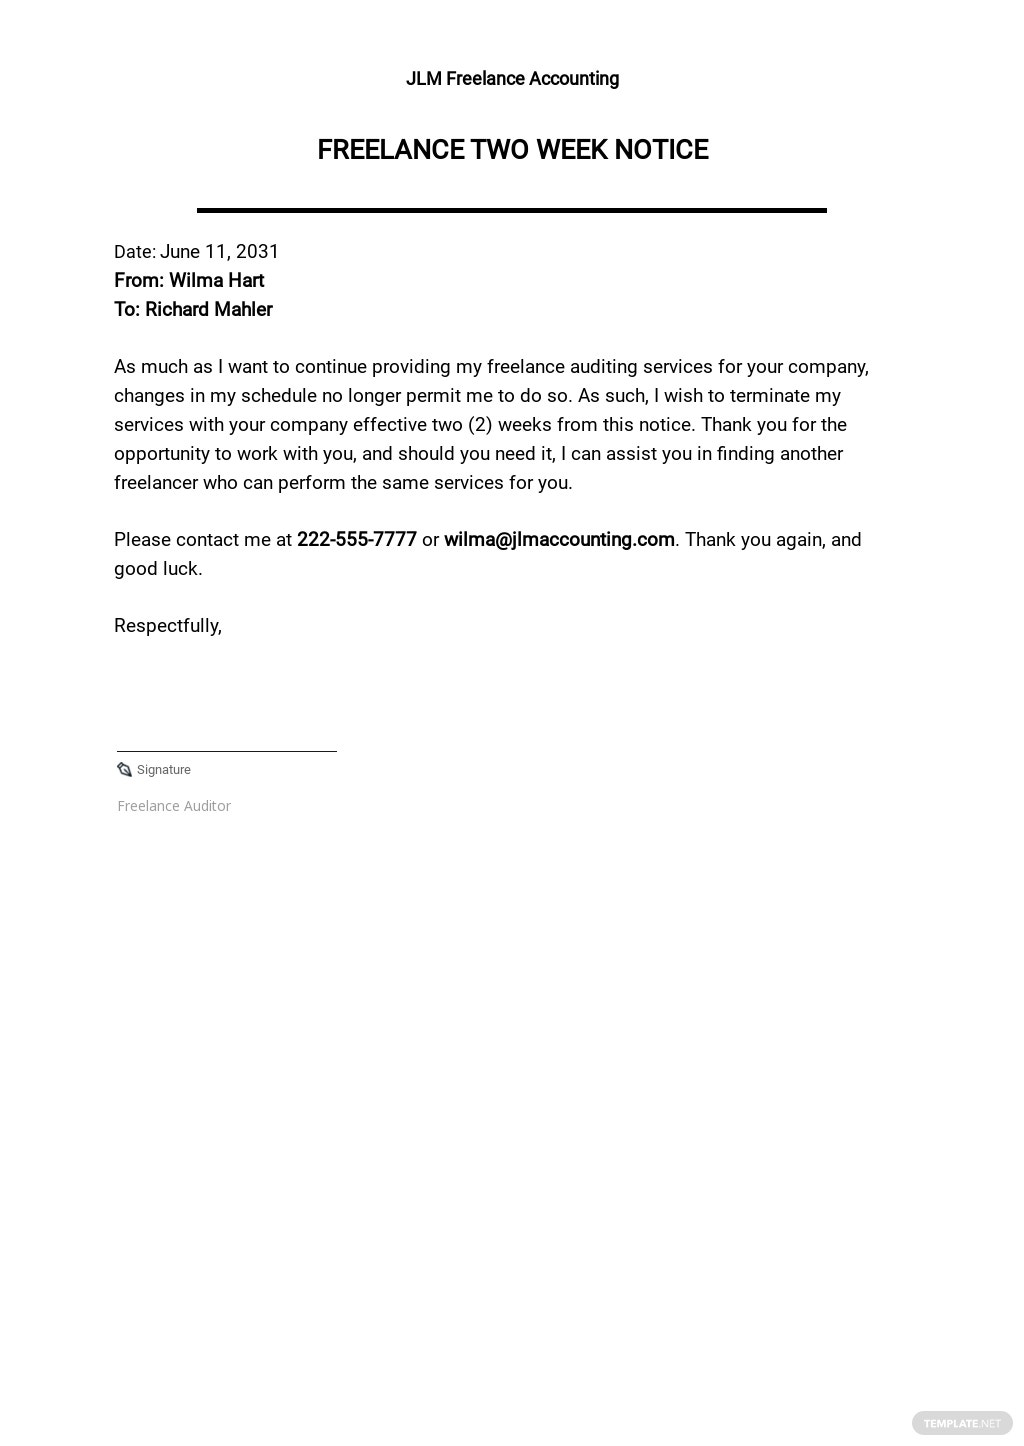 FREE Freelance Two Weeks Notice Template - Google Docs, Word